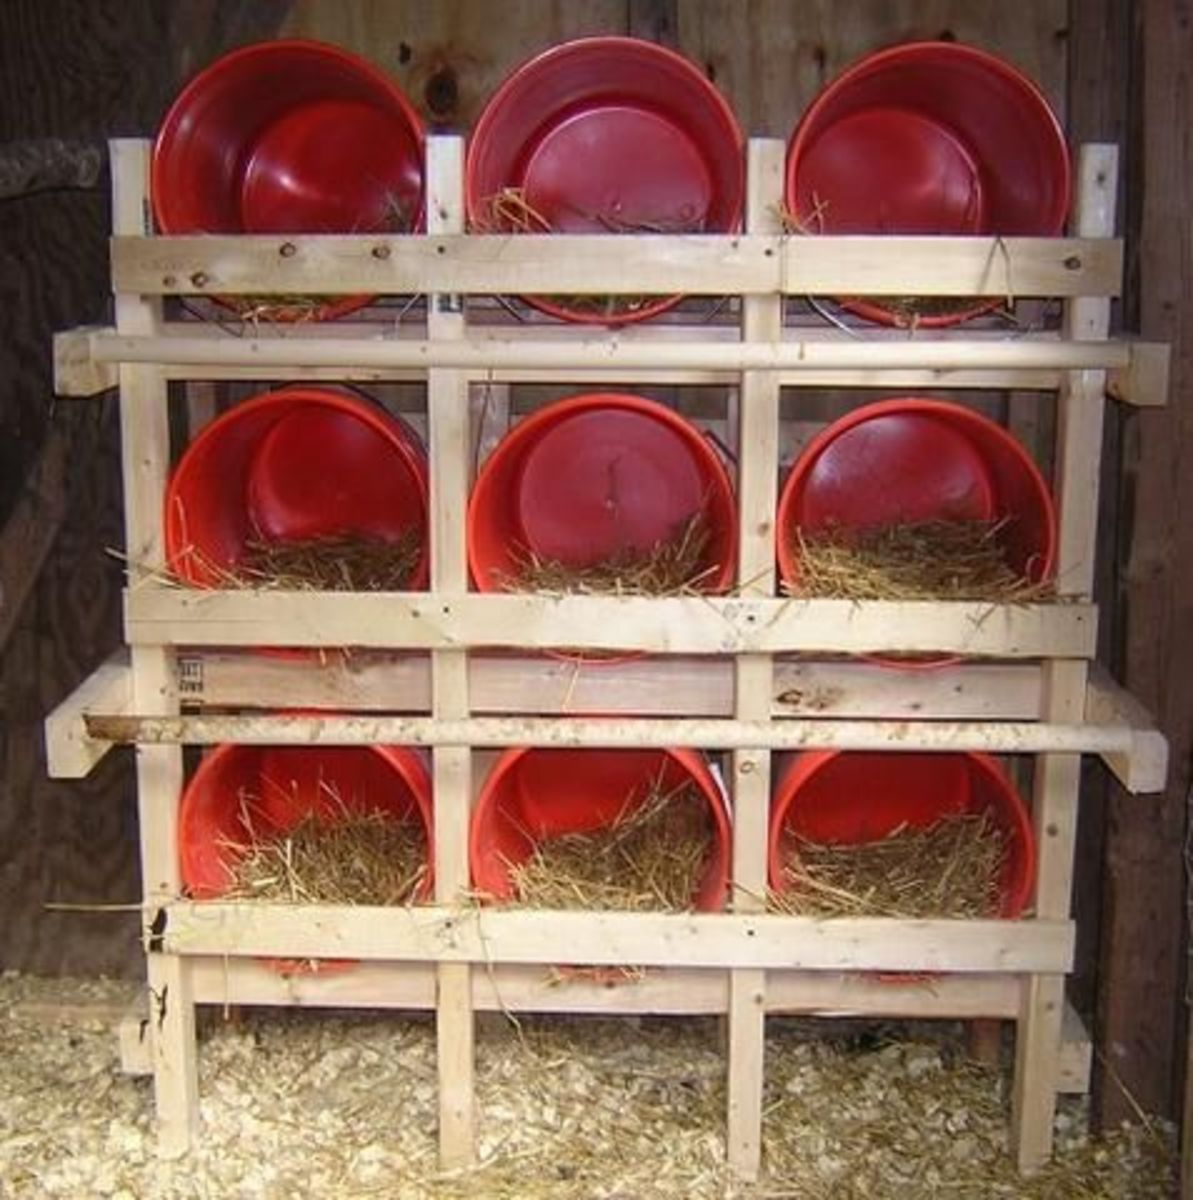 5 Gallon Buckets Make A Great Nest Box Set Up. Build A Wooden Frame To Hold Your 5 Gallon Buckets. Put Hay Or Straw In The Bottom Of The Buckets To Encourage Your Hens To Lay Their Eggs There.